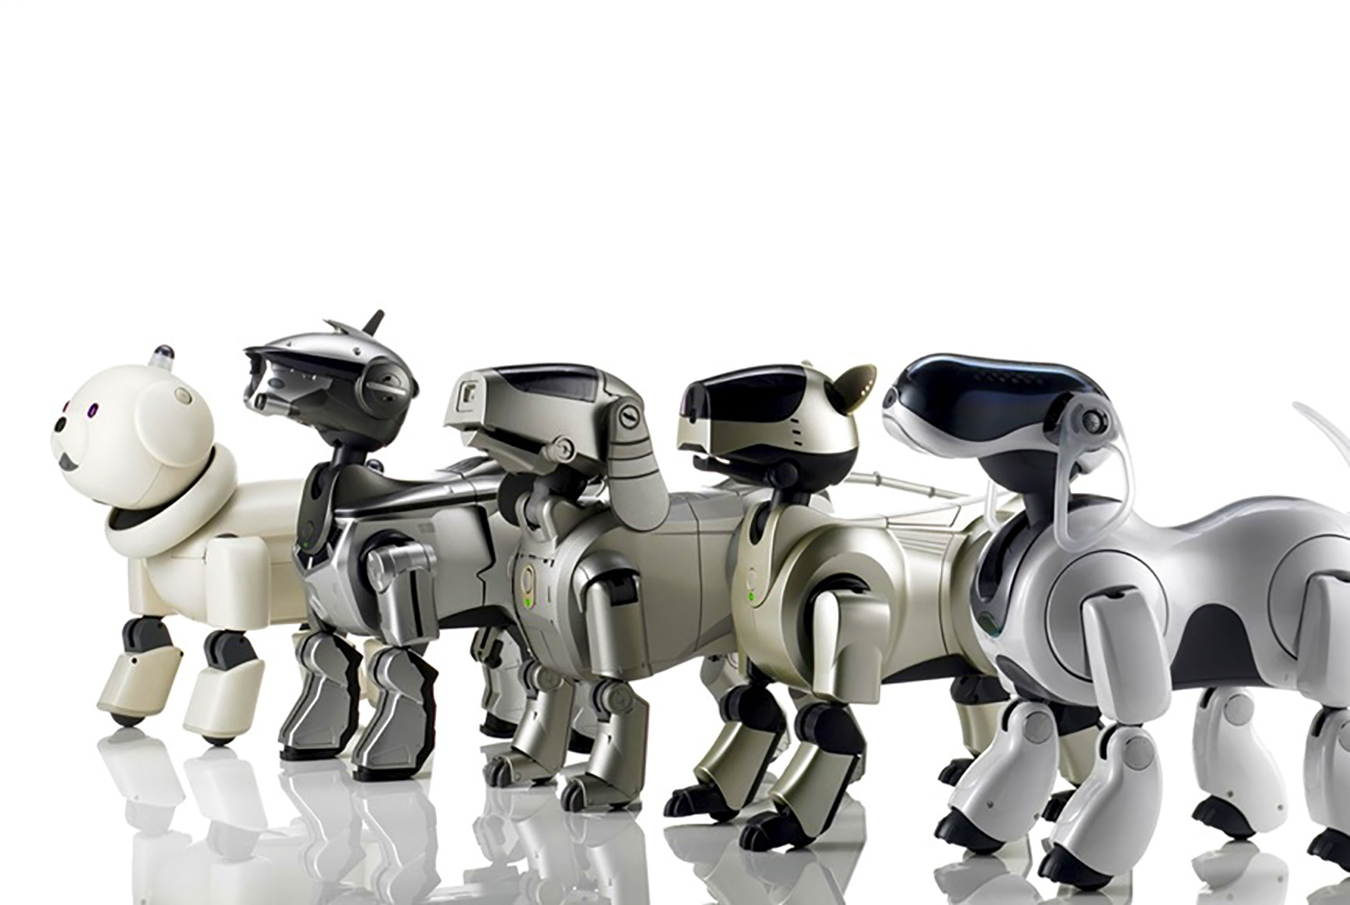 AIBO models, 1999–2006, by Sony.